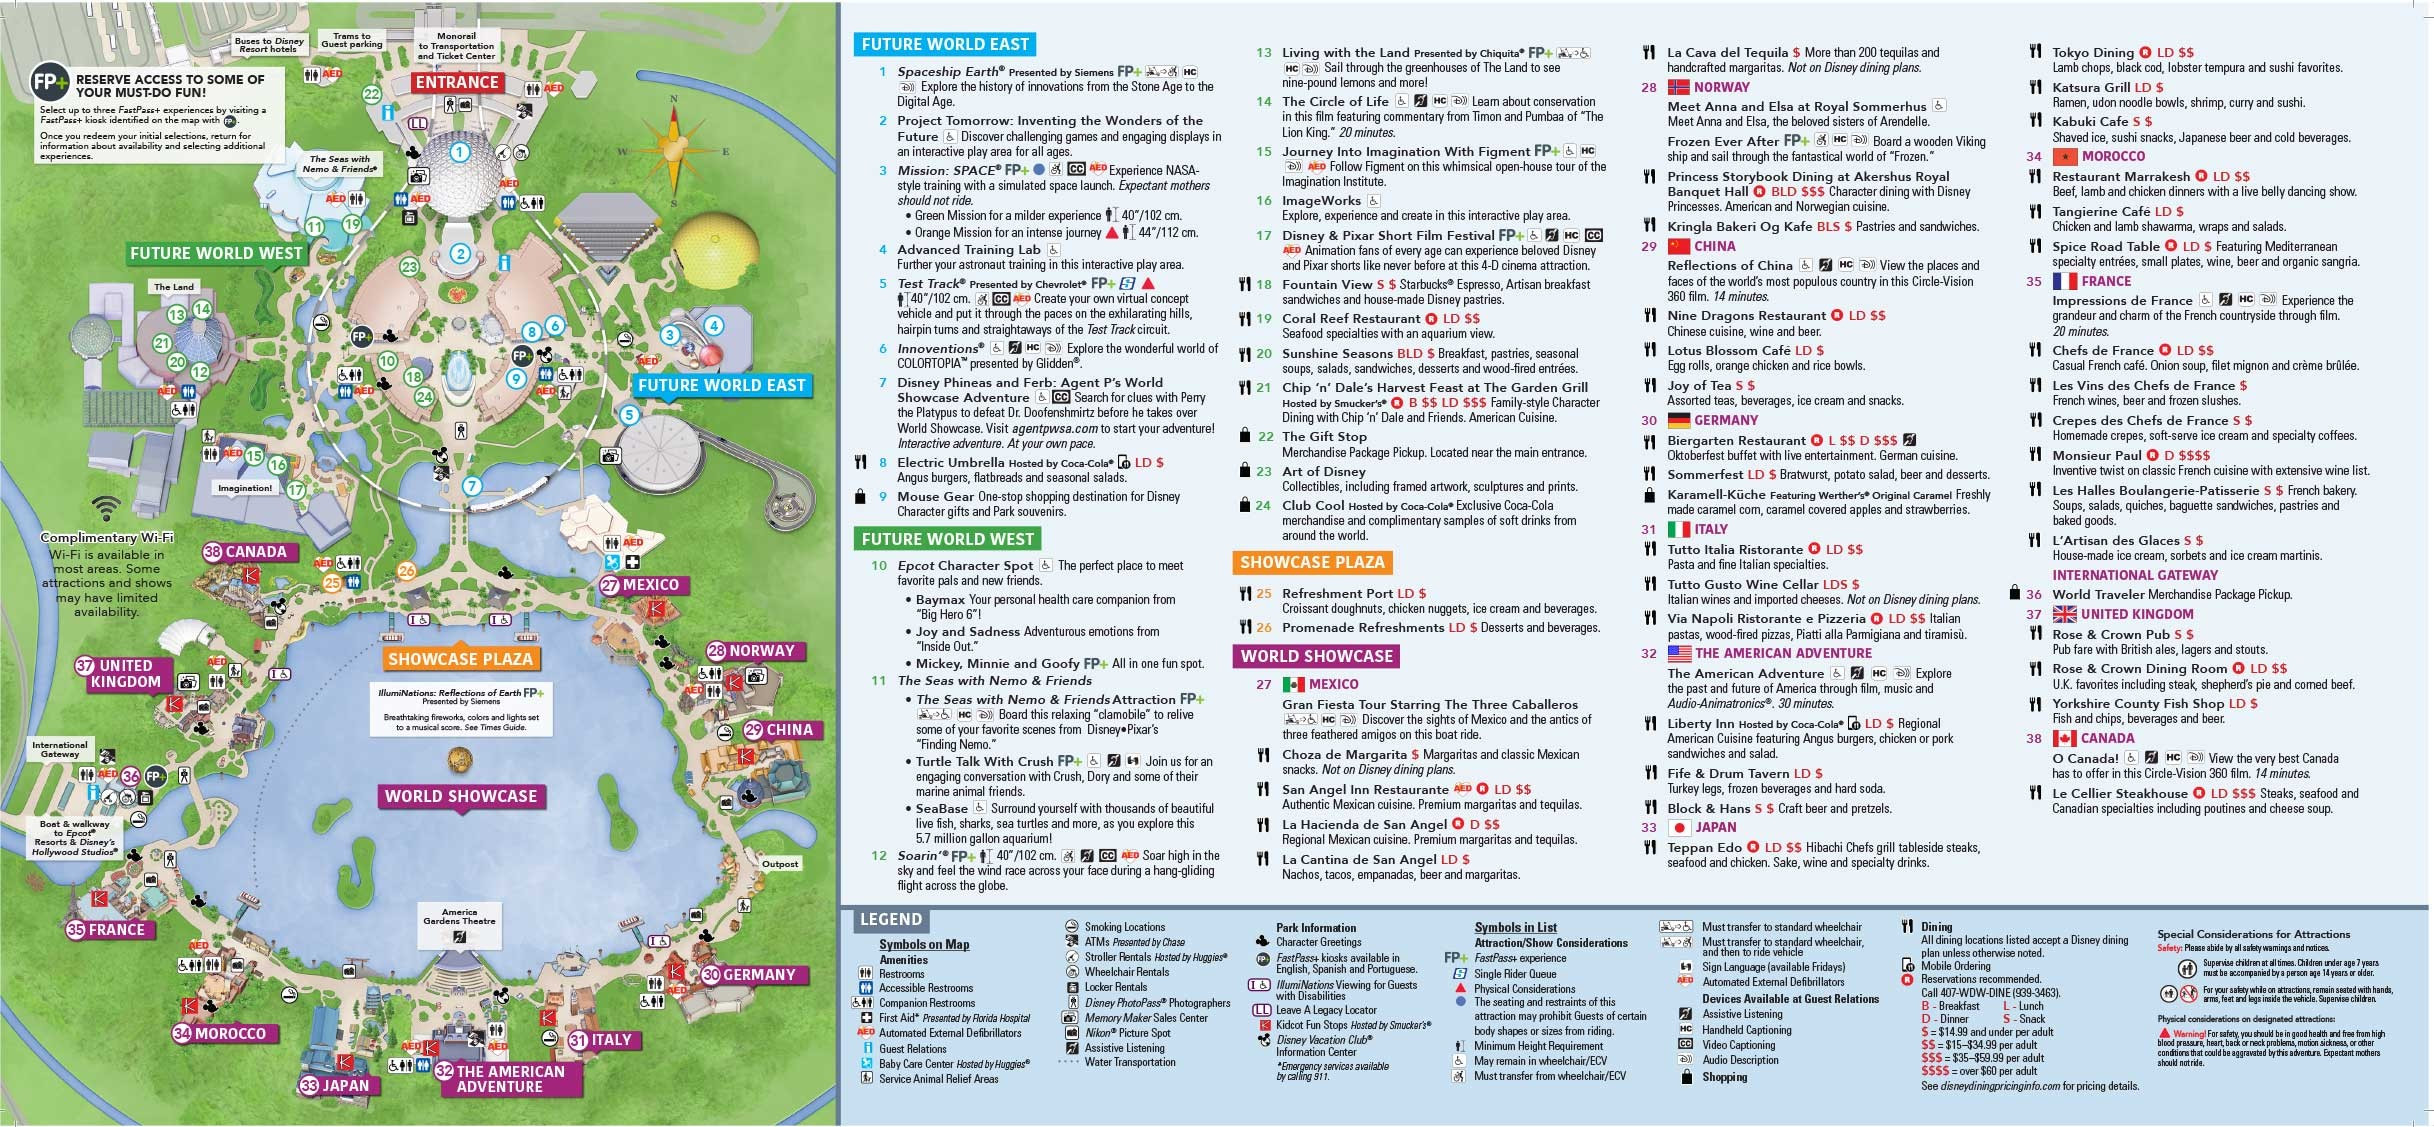 Epcot Map World Showcase awesomebryner